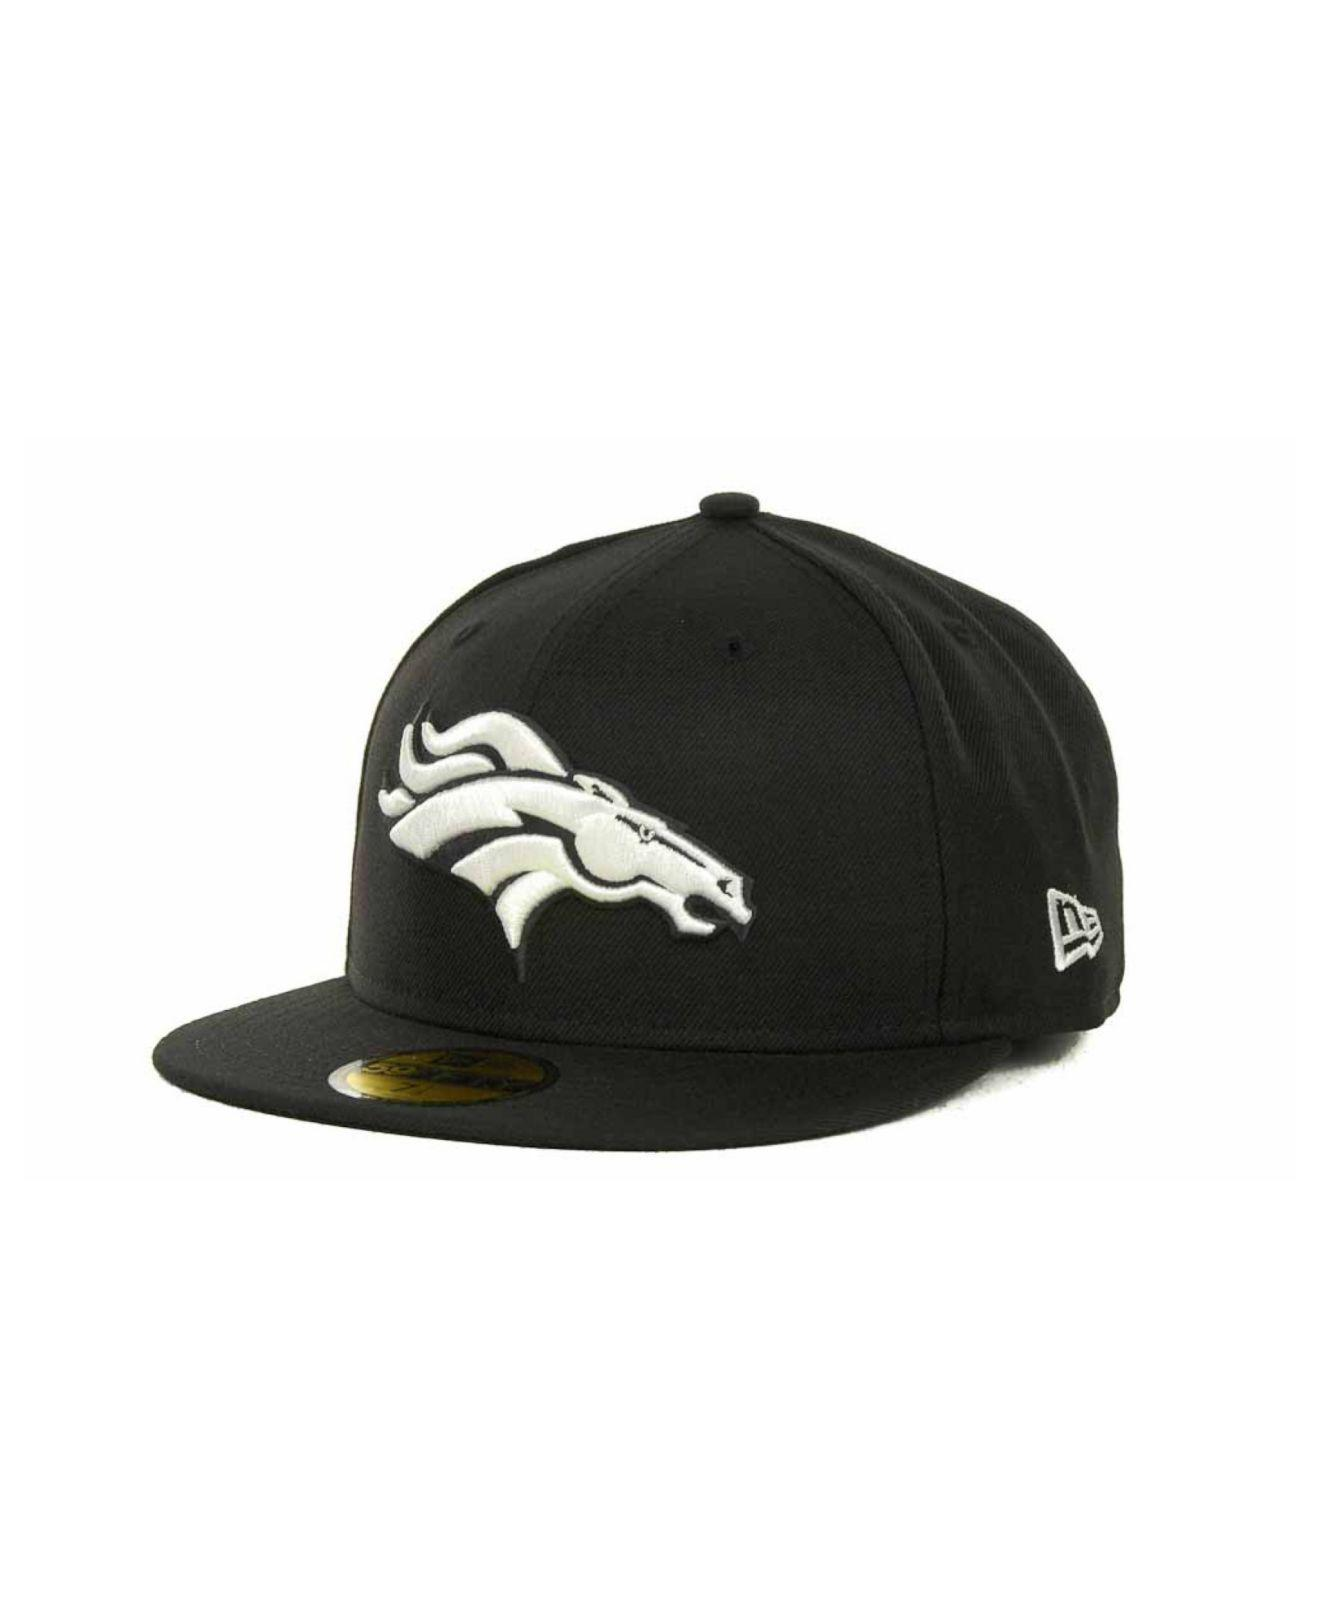 4e25e5642 Lyst - Ktz Denver Broncos 59fifty Cap in Black for Men